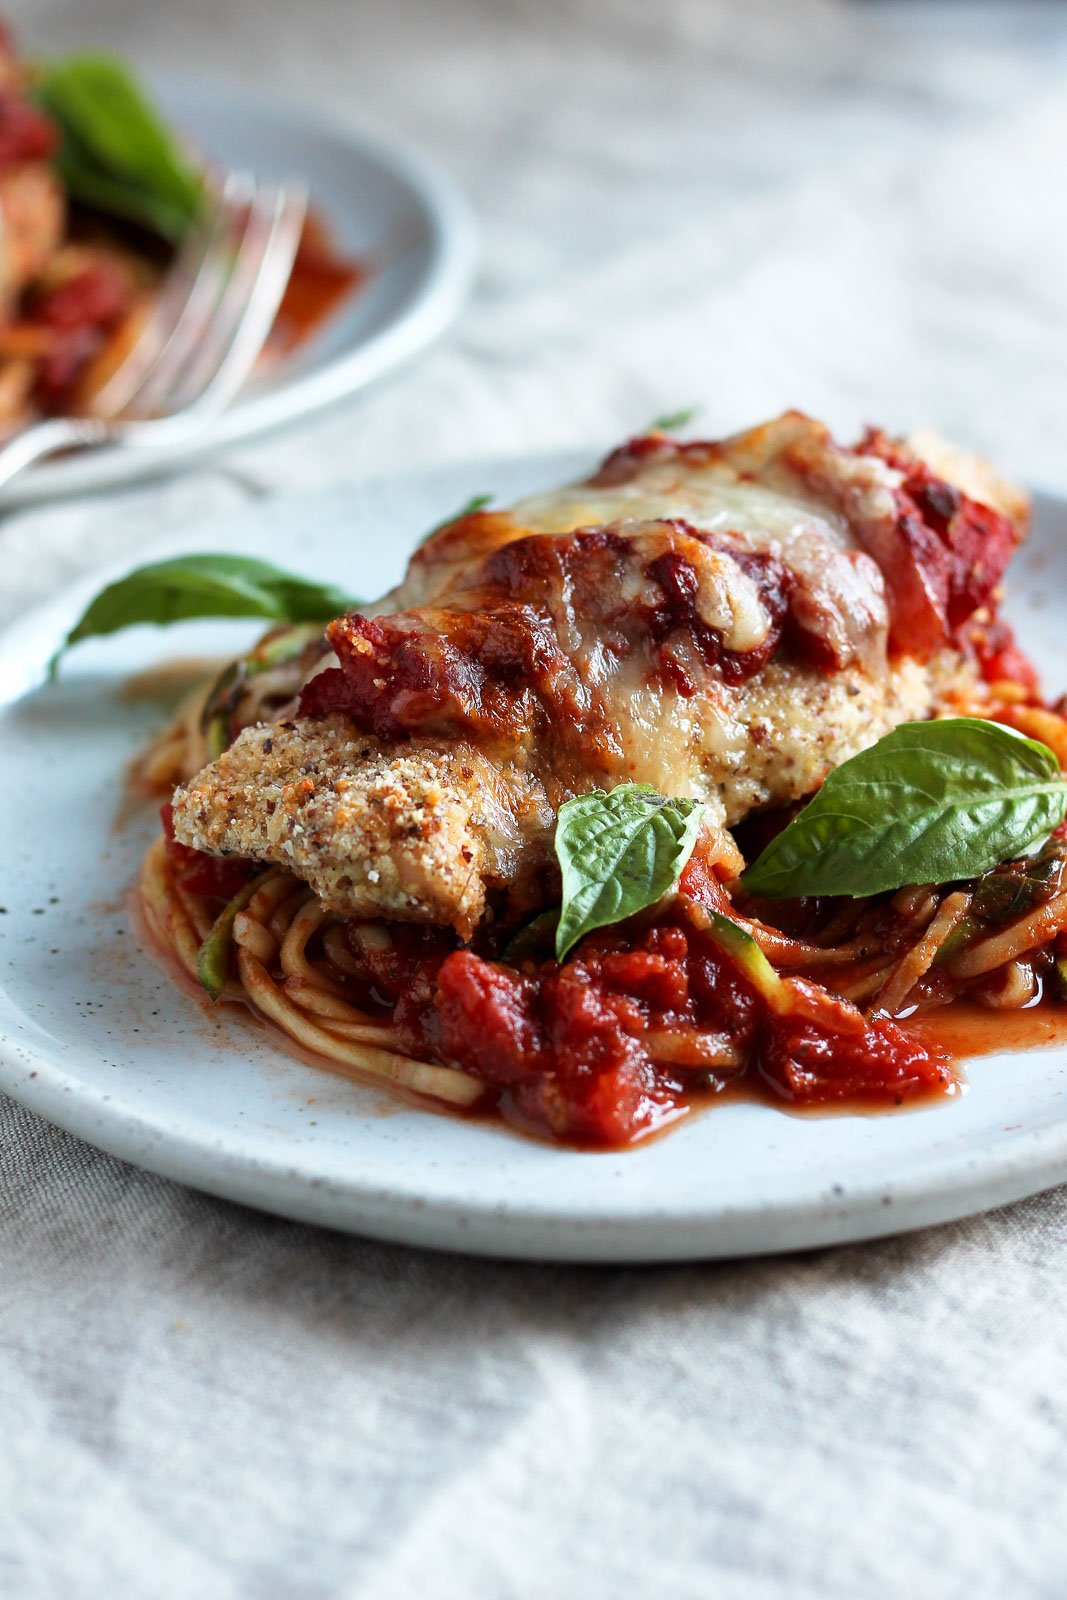 This Healthy Baked Chicken Parmesan is the most amazing comfort food makeover! Serve over zucchini noodles for a low carb, gluten free dinner.